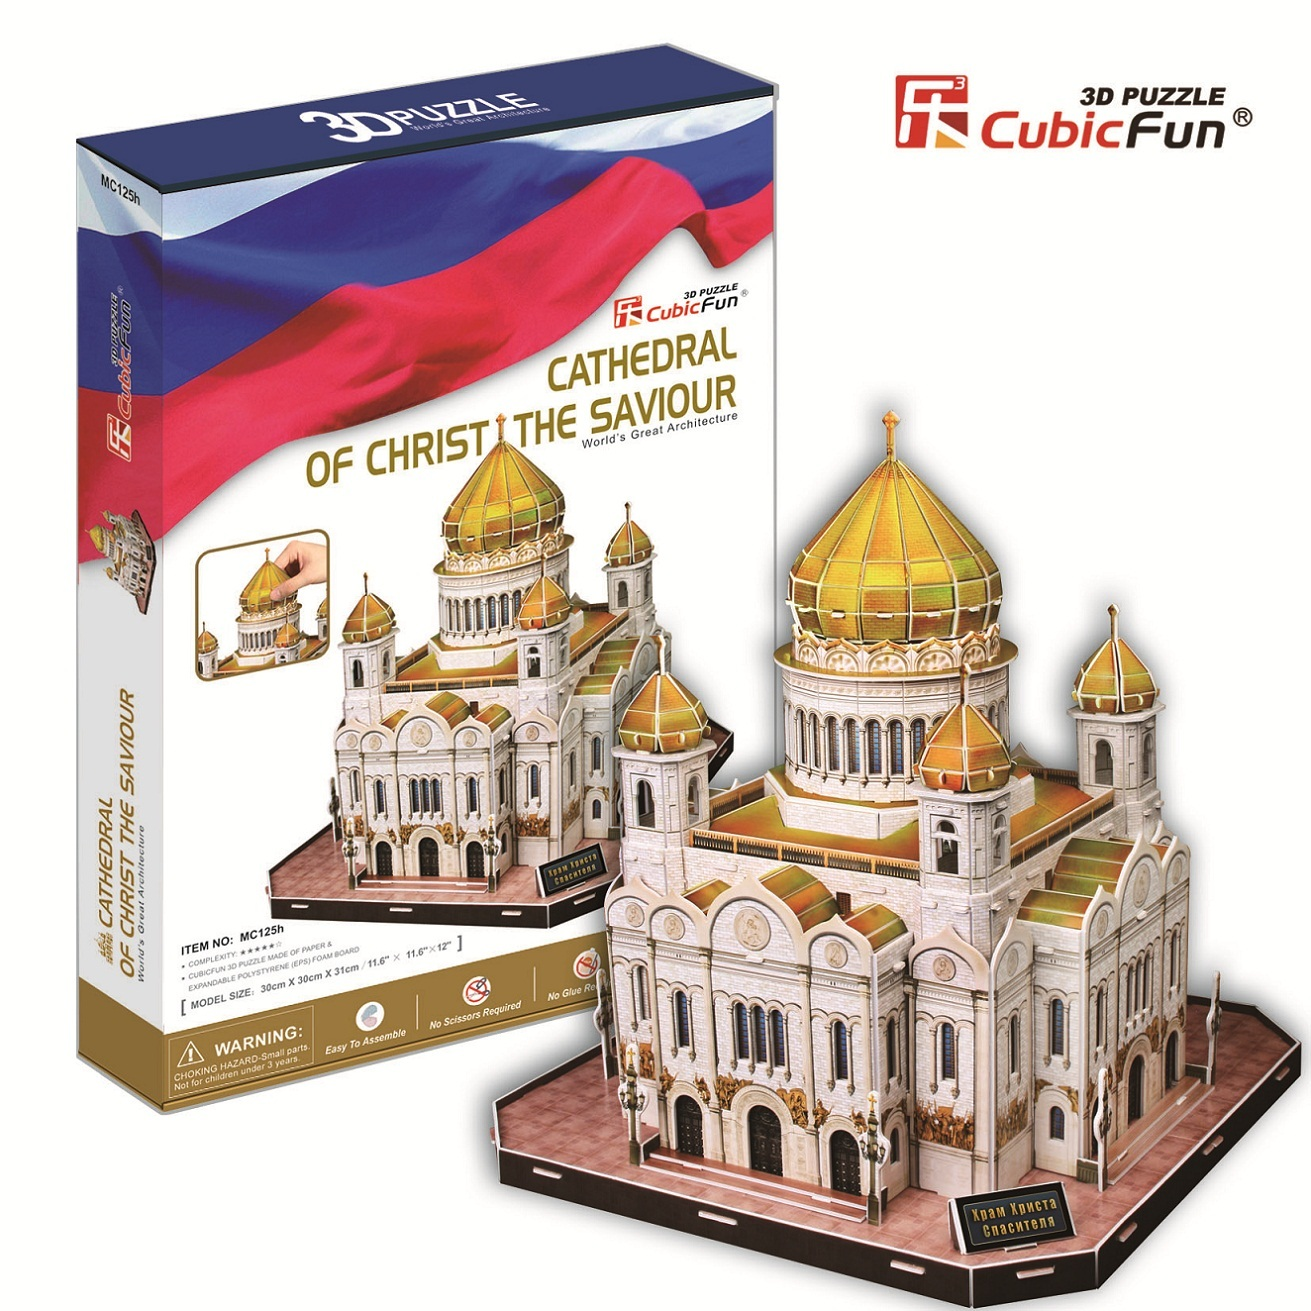 Children favorite toy New arrival 3D paper puzzle building model MC125H The Cathedral of Christ the Saviour Russia birthday gift eighteen disciples of the buddha children puzzle toy building blocks